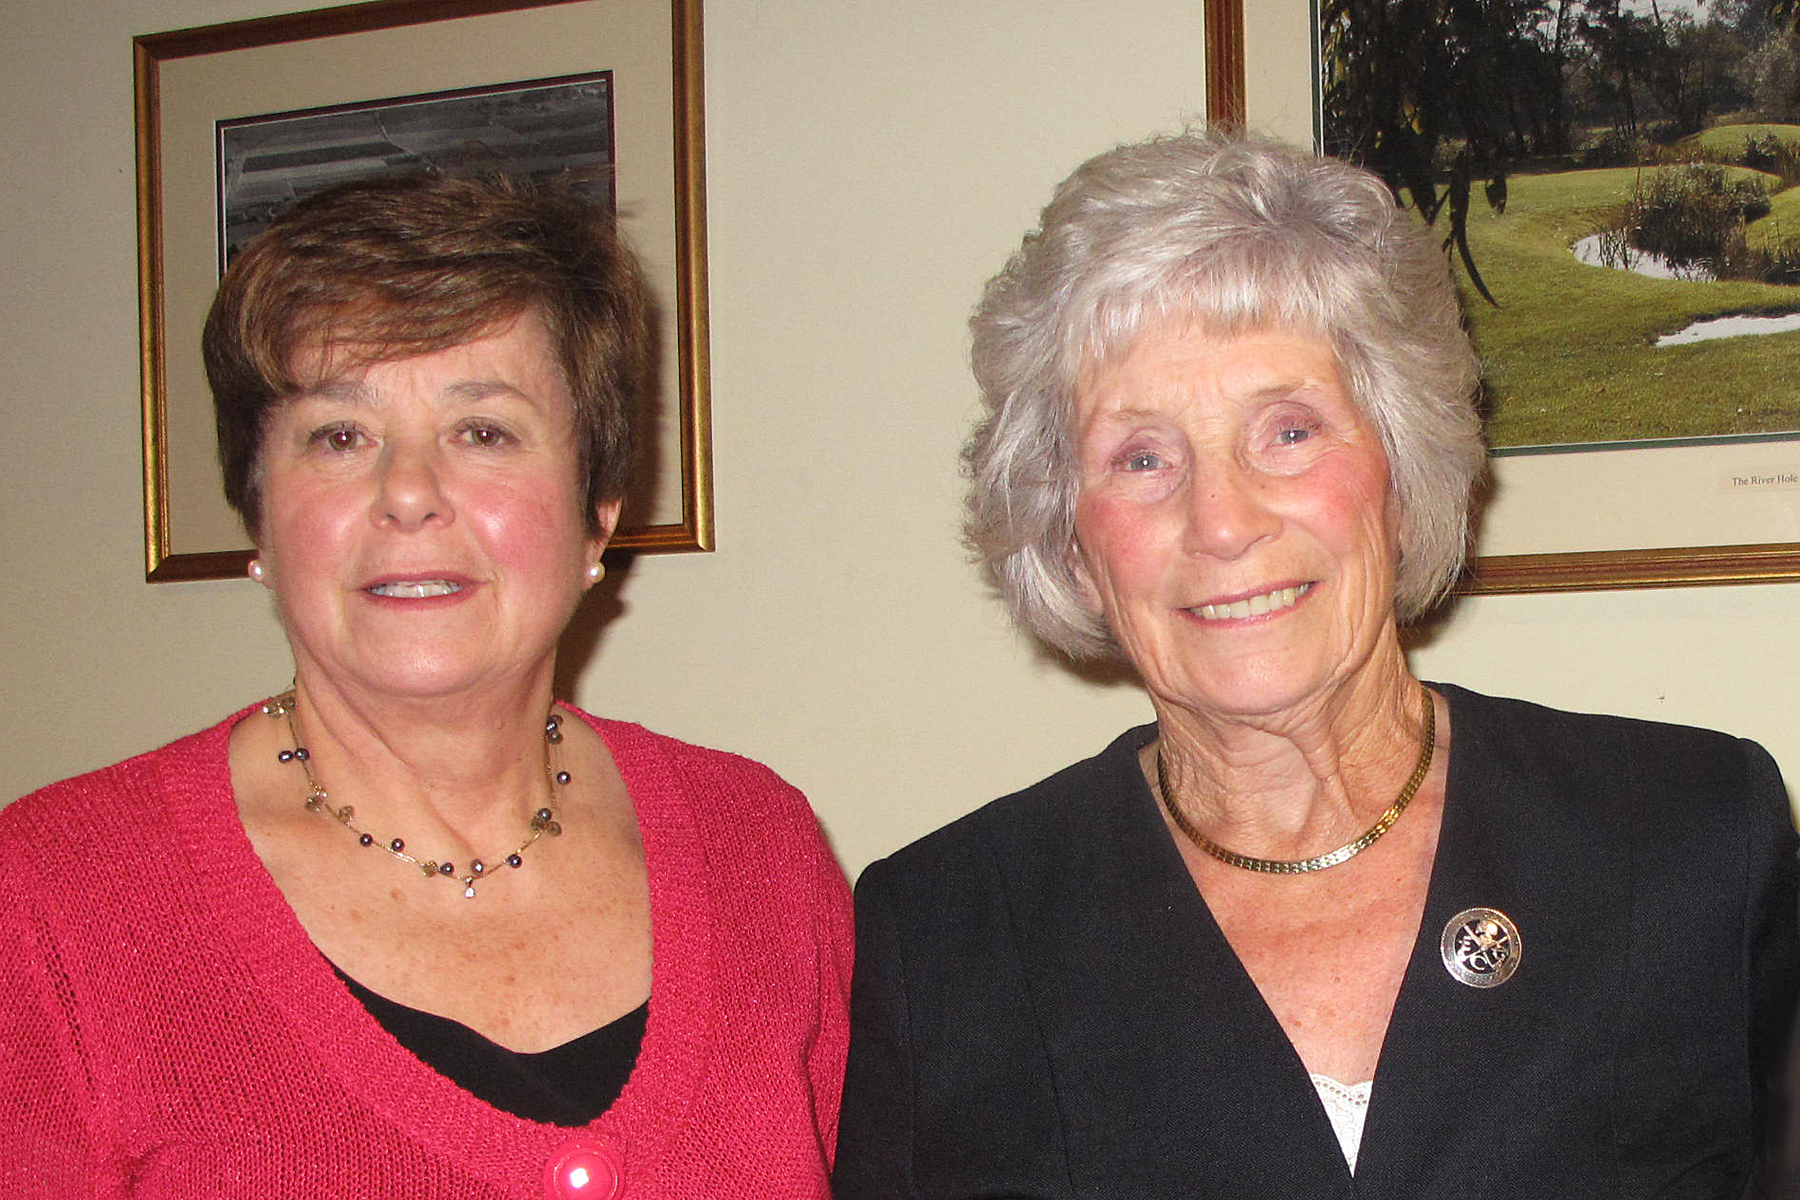 TAKING OVER: Past lady captain Angela Budden and her successor Enid Walker at Evesham Golf Club. Picture: ANGELA FLETCHER.